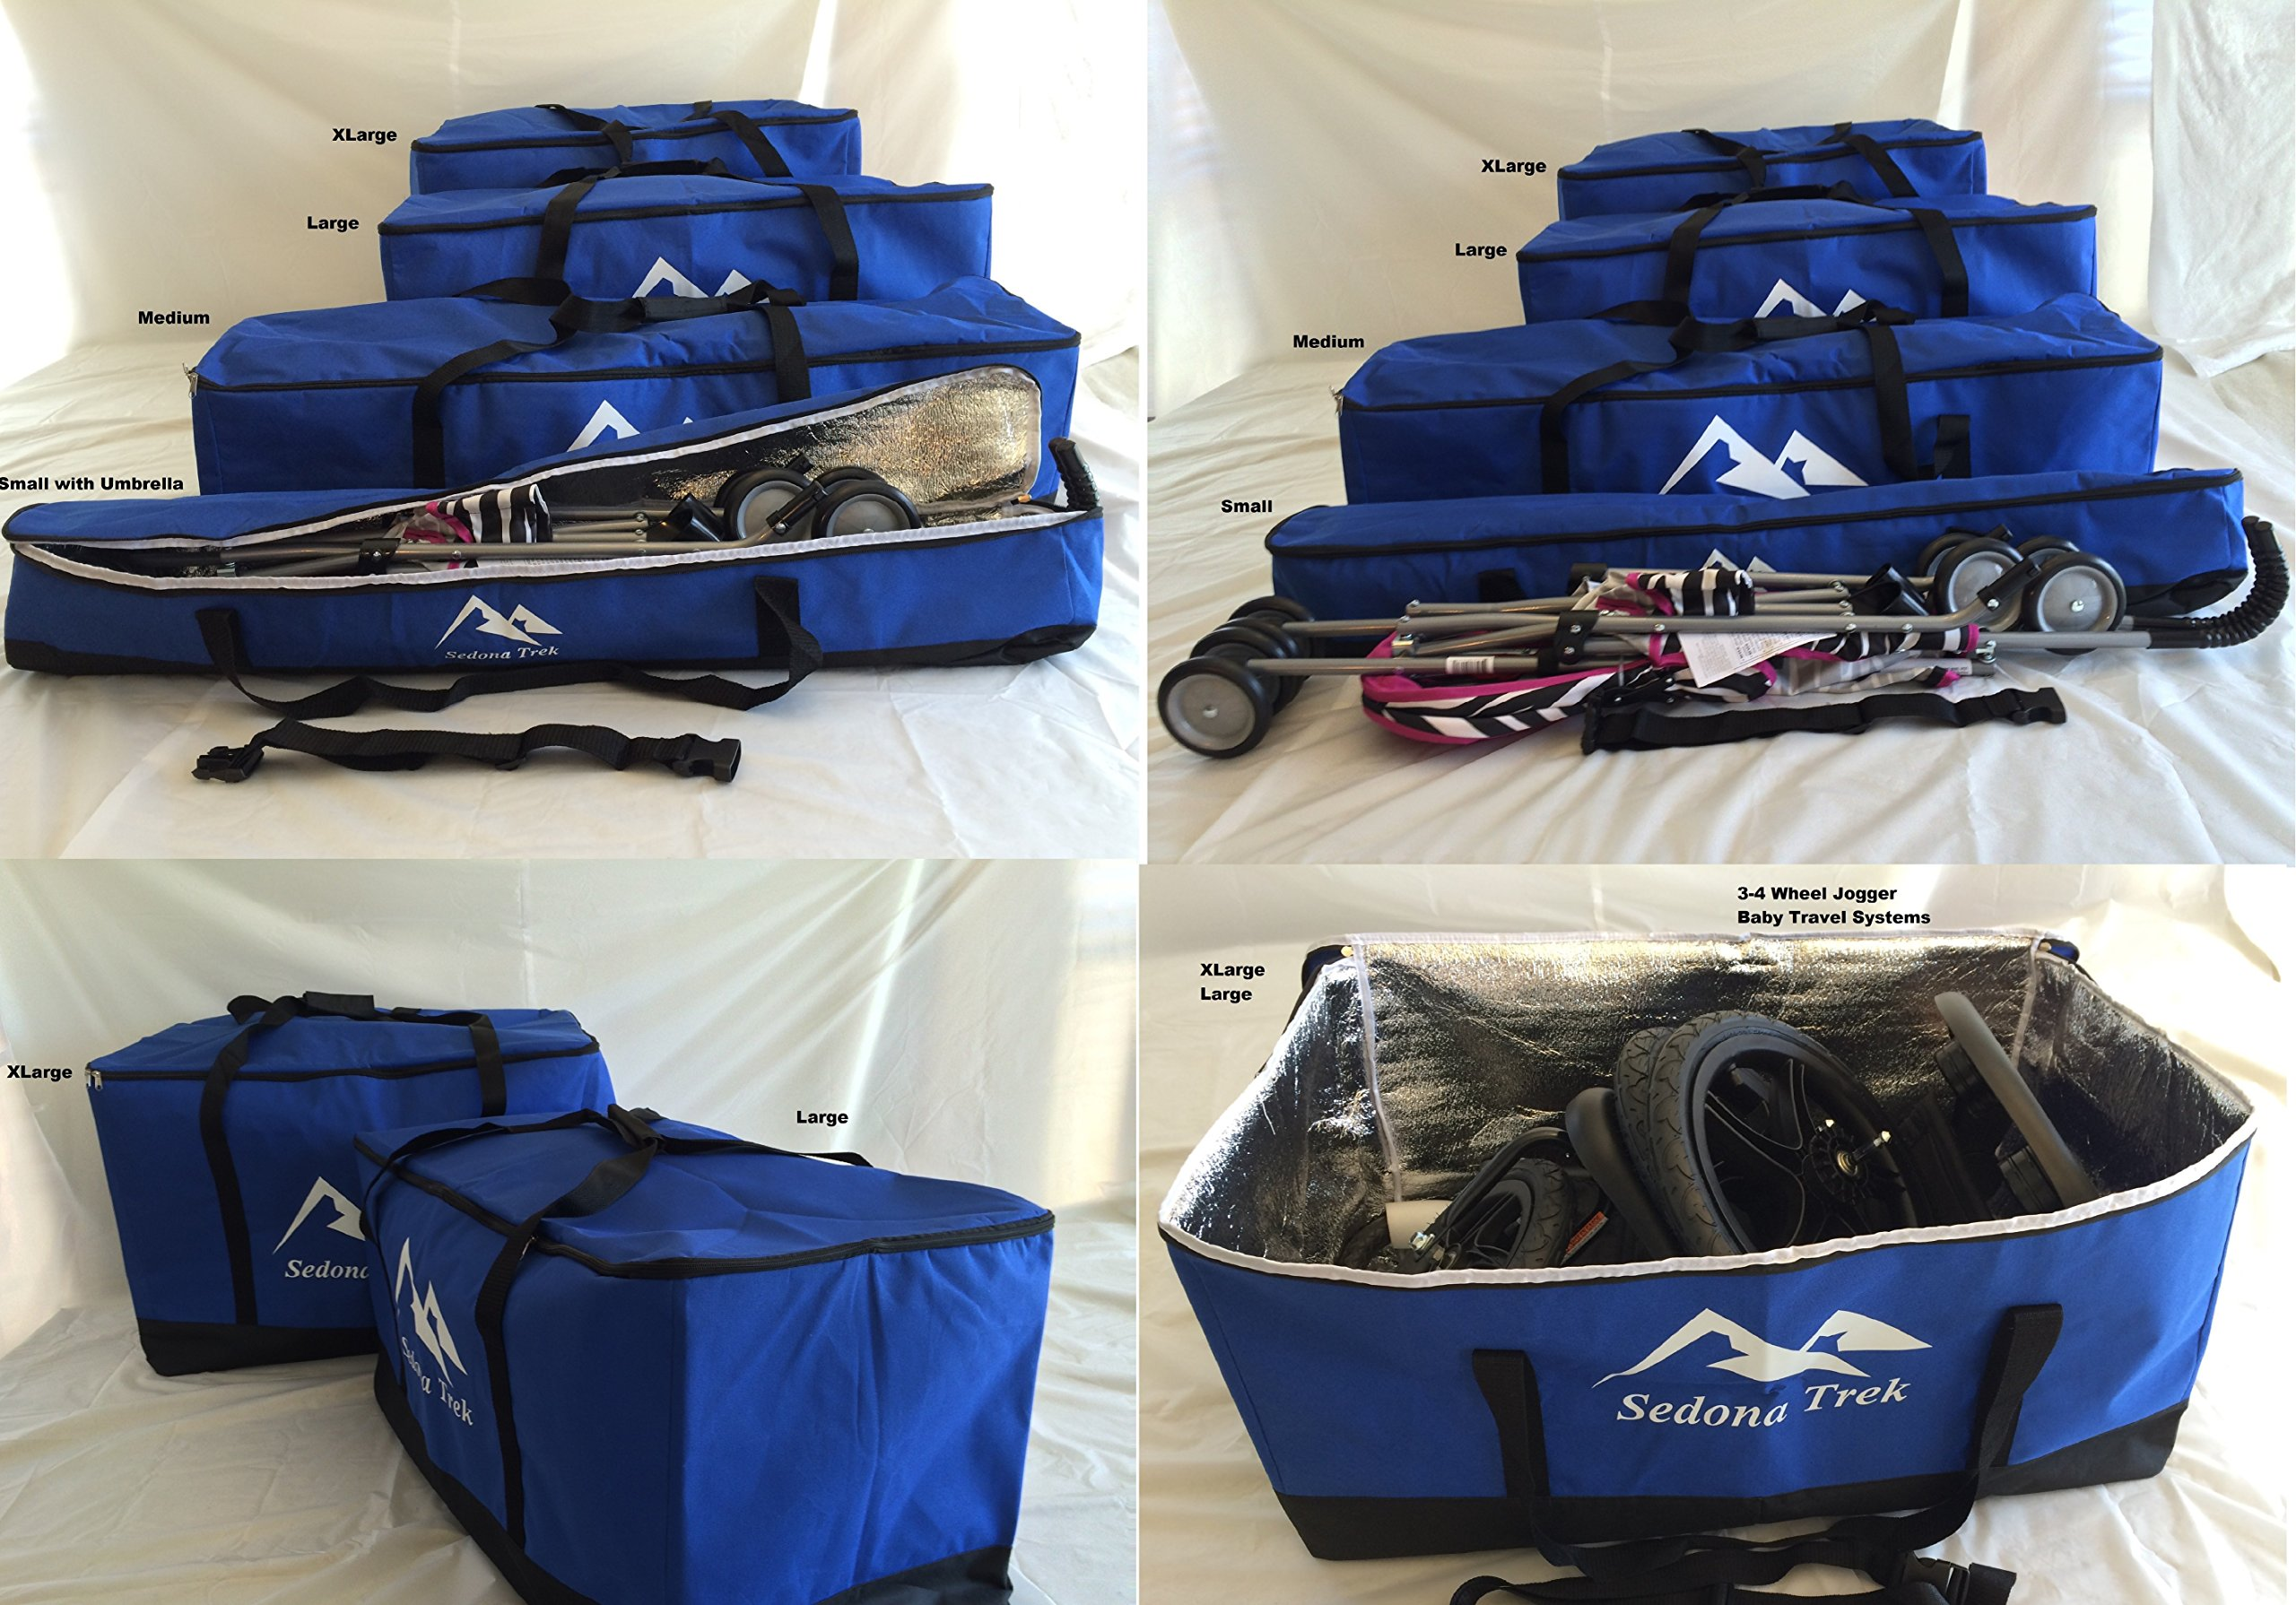 Medium Multi-Purpose Bags 11x11x43 inches for Travel Cargo, Sports, Camping, Hunting, Fishing Gear, Child Car Seats, All Strollers, Joggers, Storage, Tough Ballistic Fabric, Multilayered, Padded